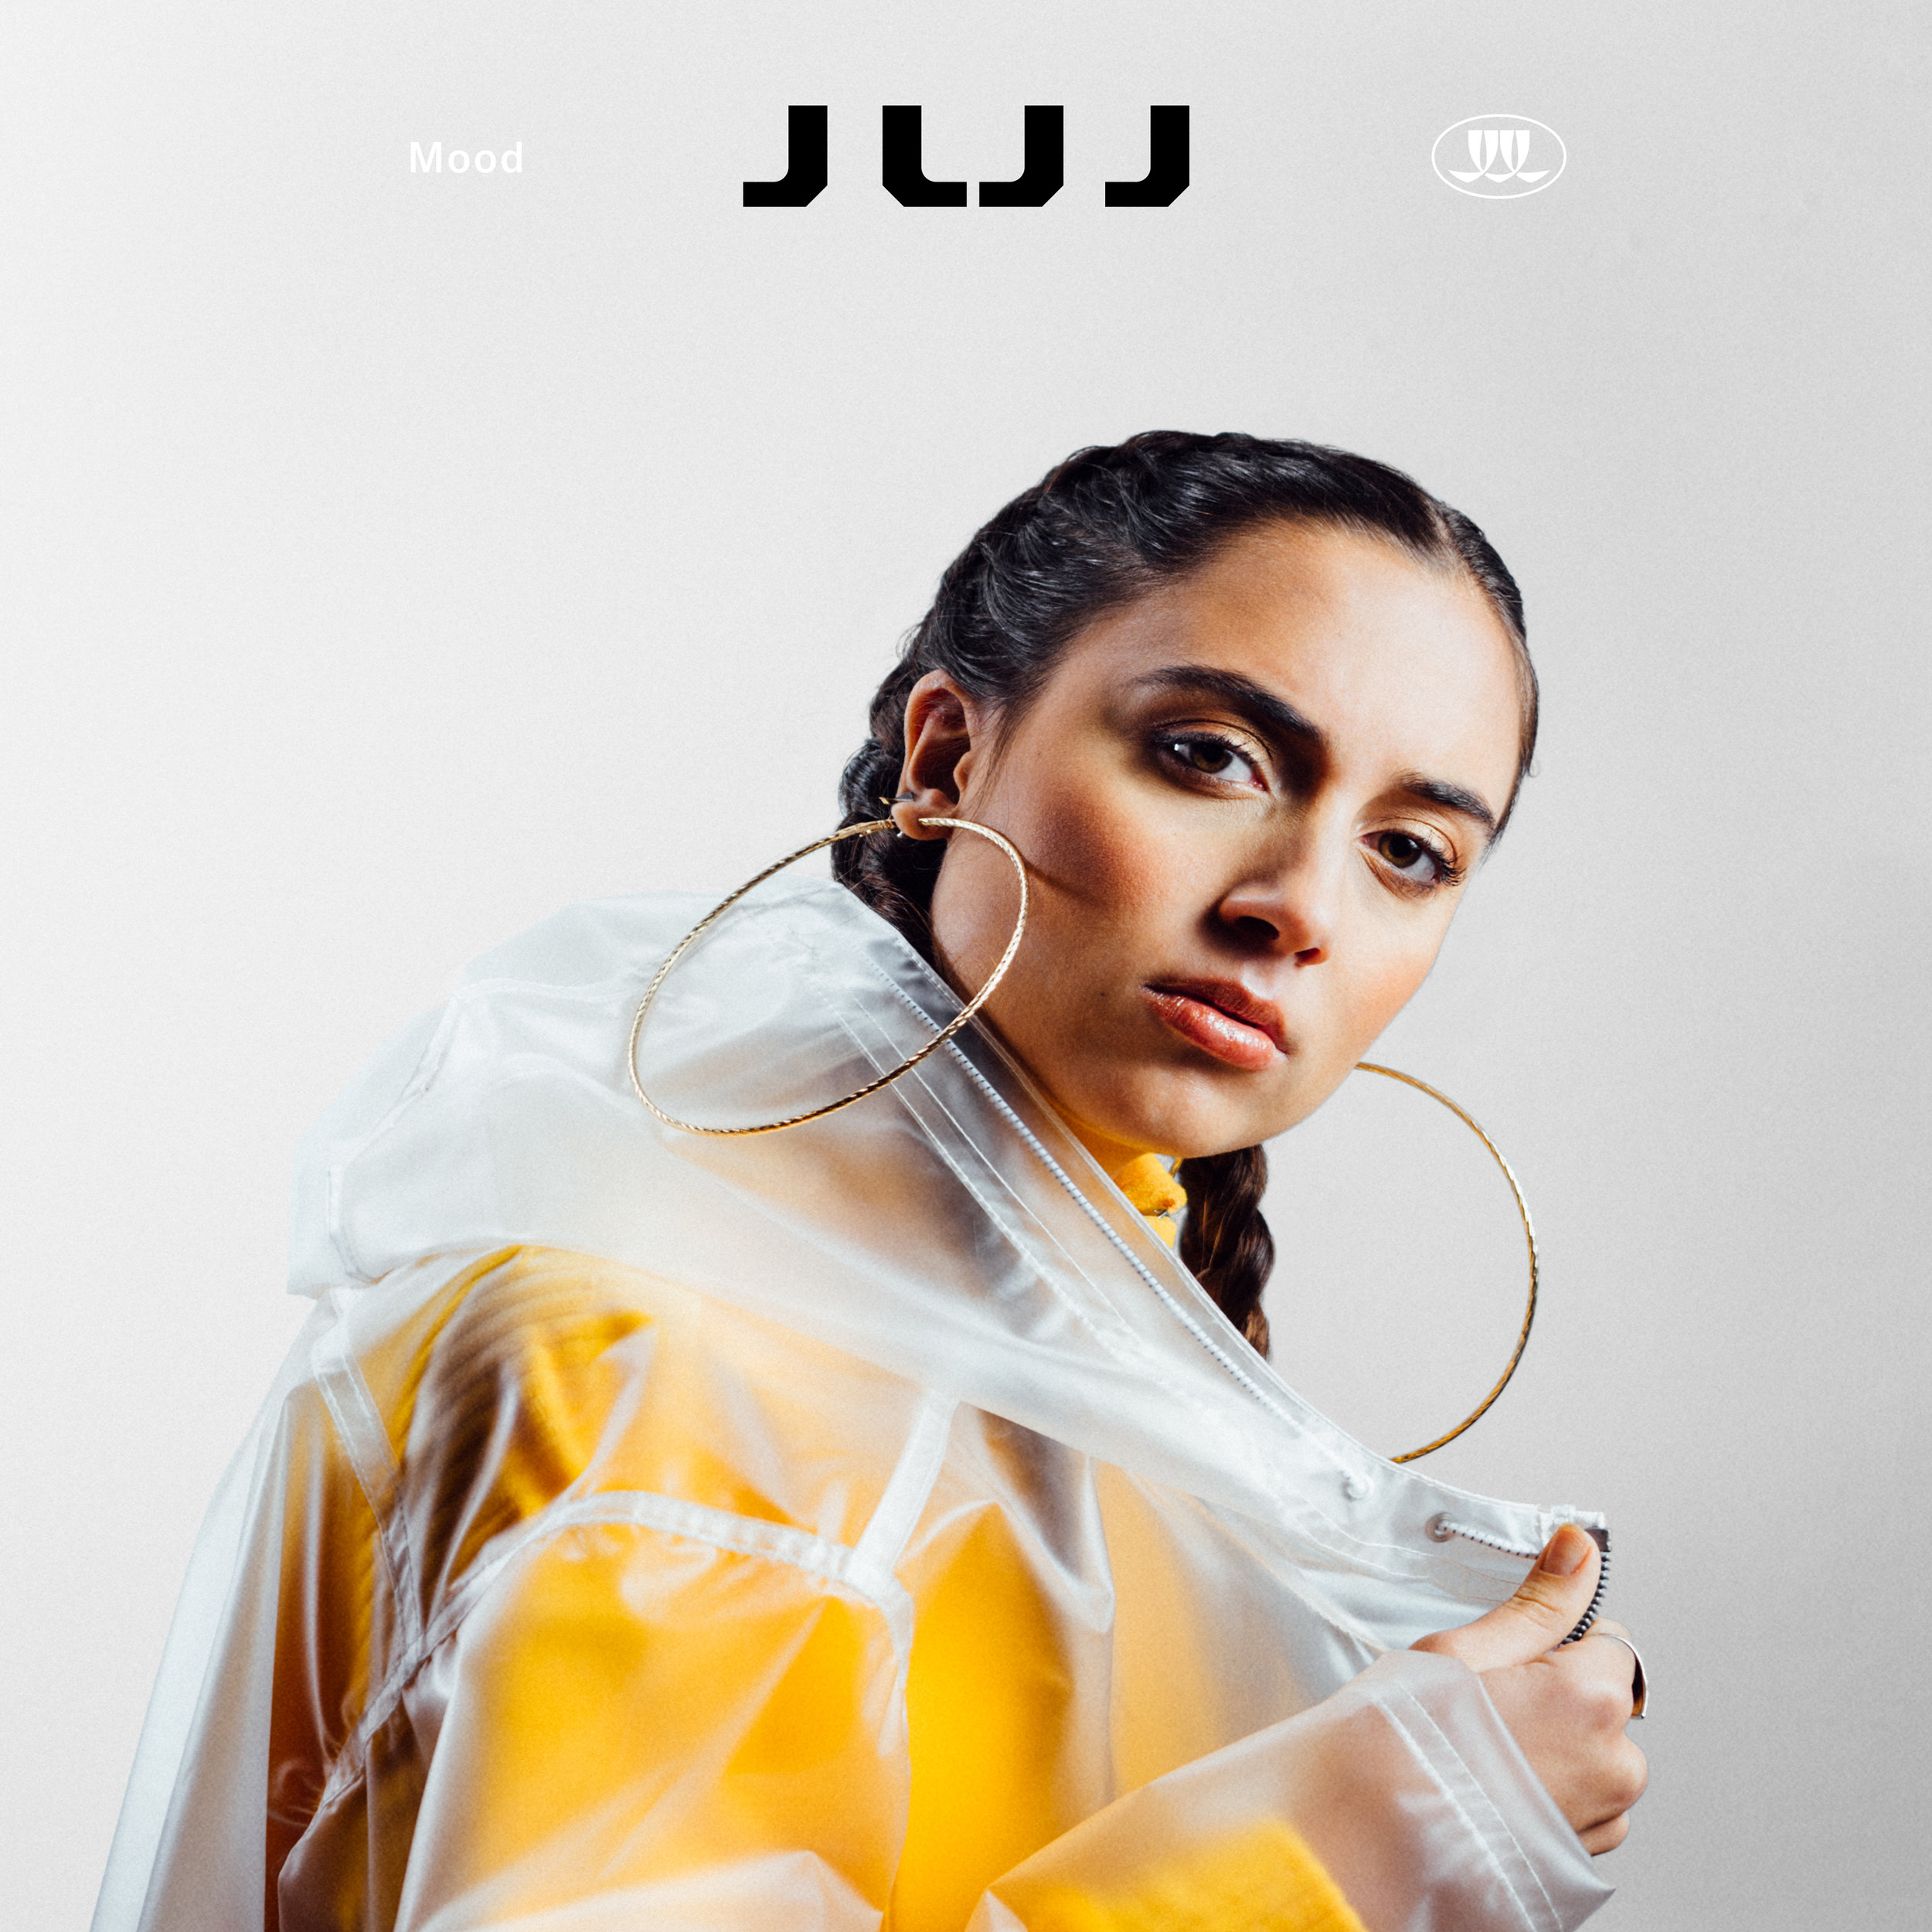 JUJ-1-Single-Mood-Final (1).jpg